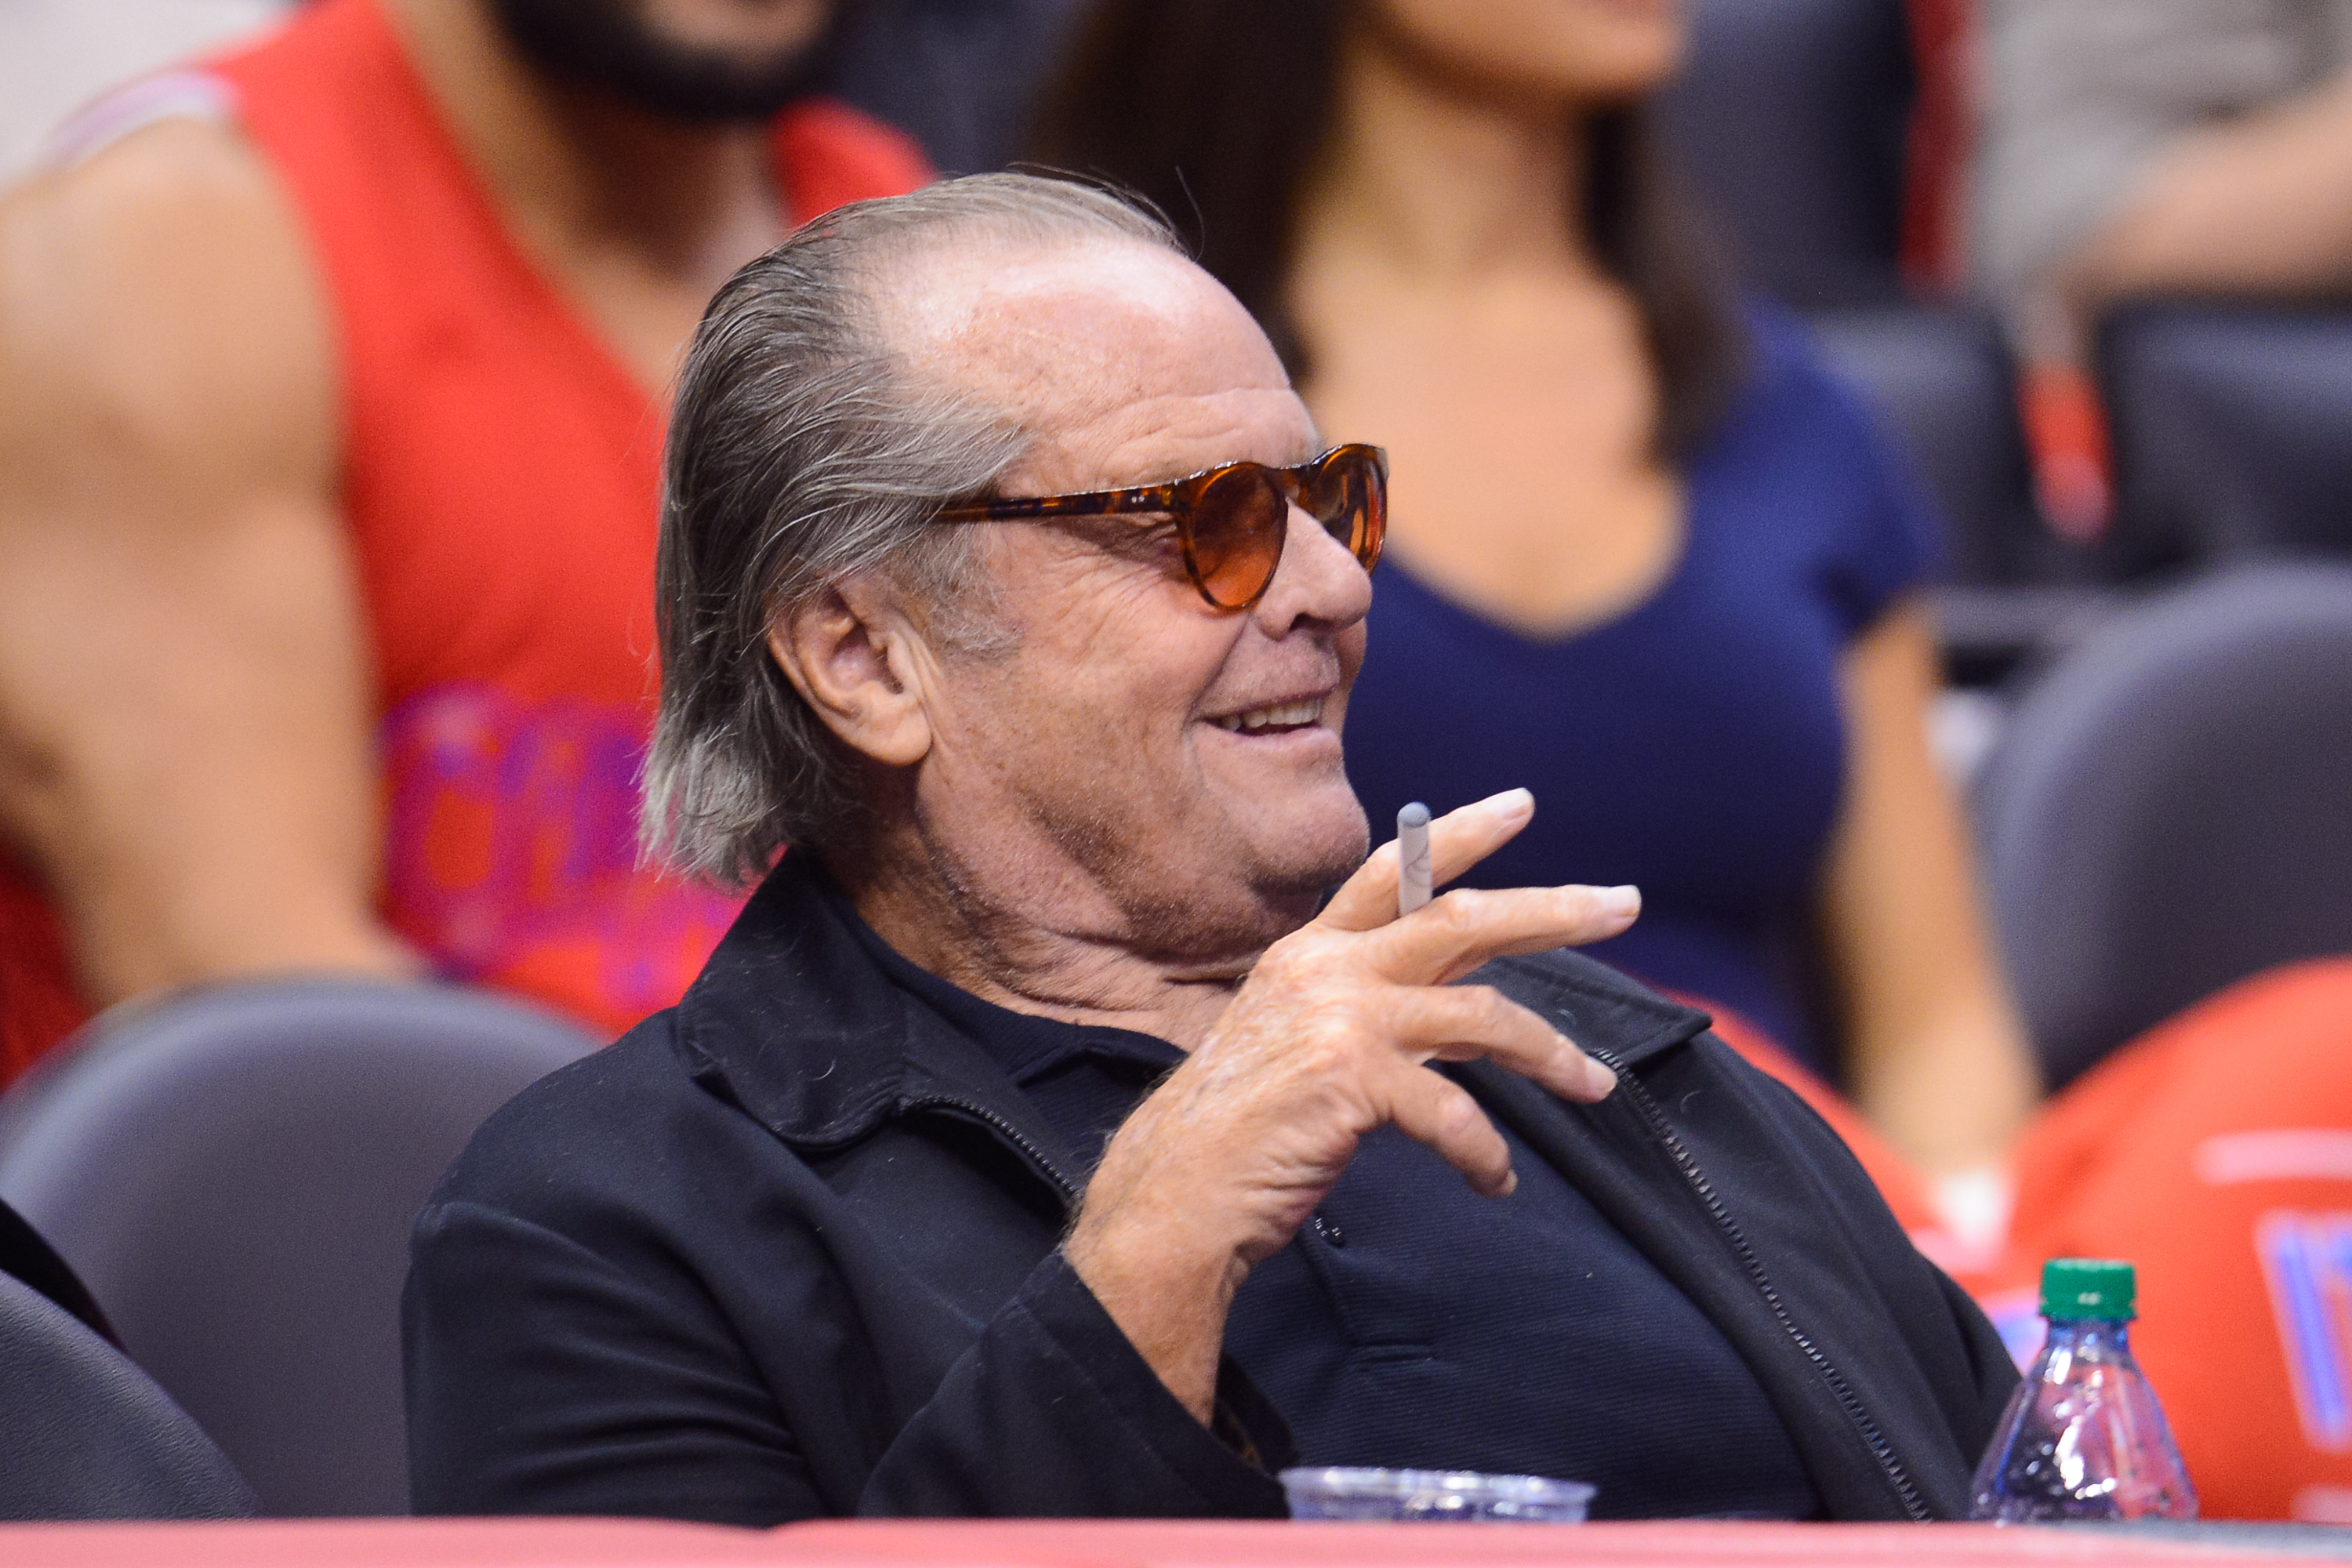 Jack Nicholson to Star in First Movie Since 2010 - Rolling ...